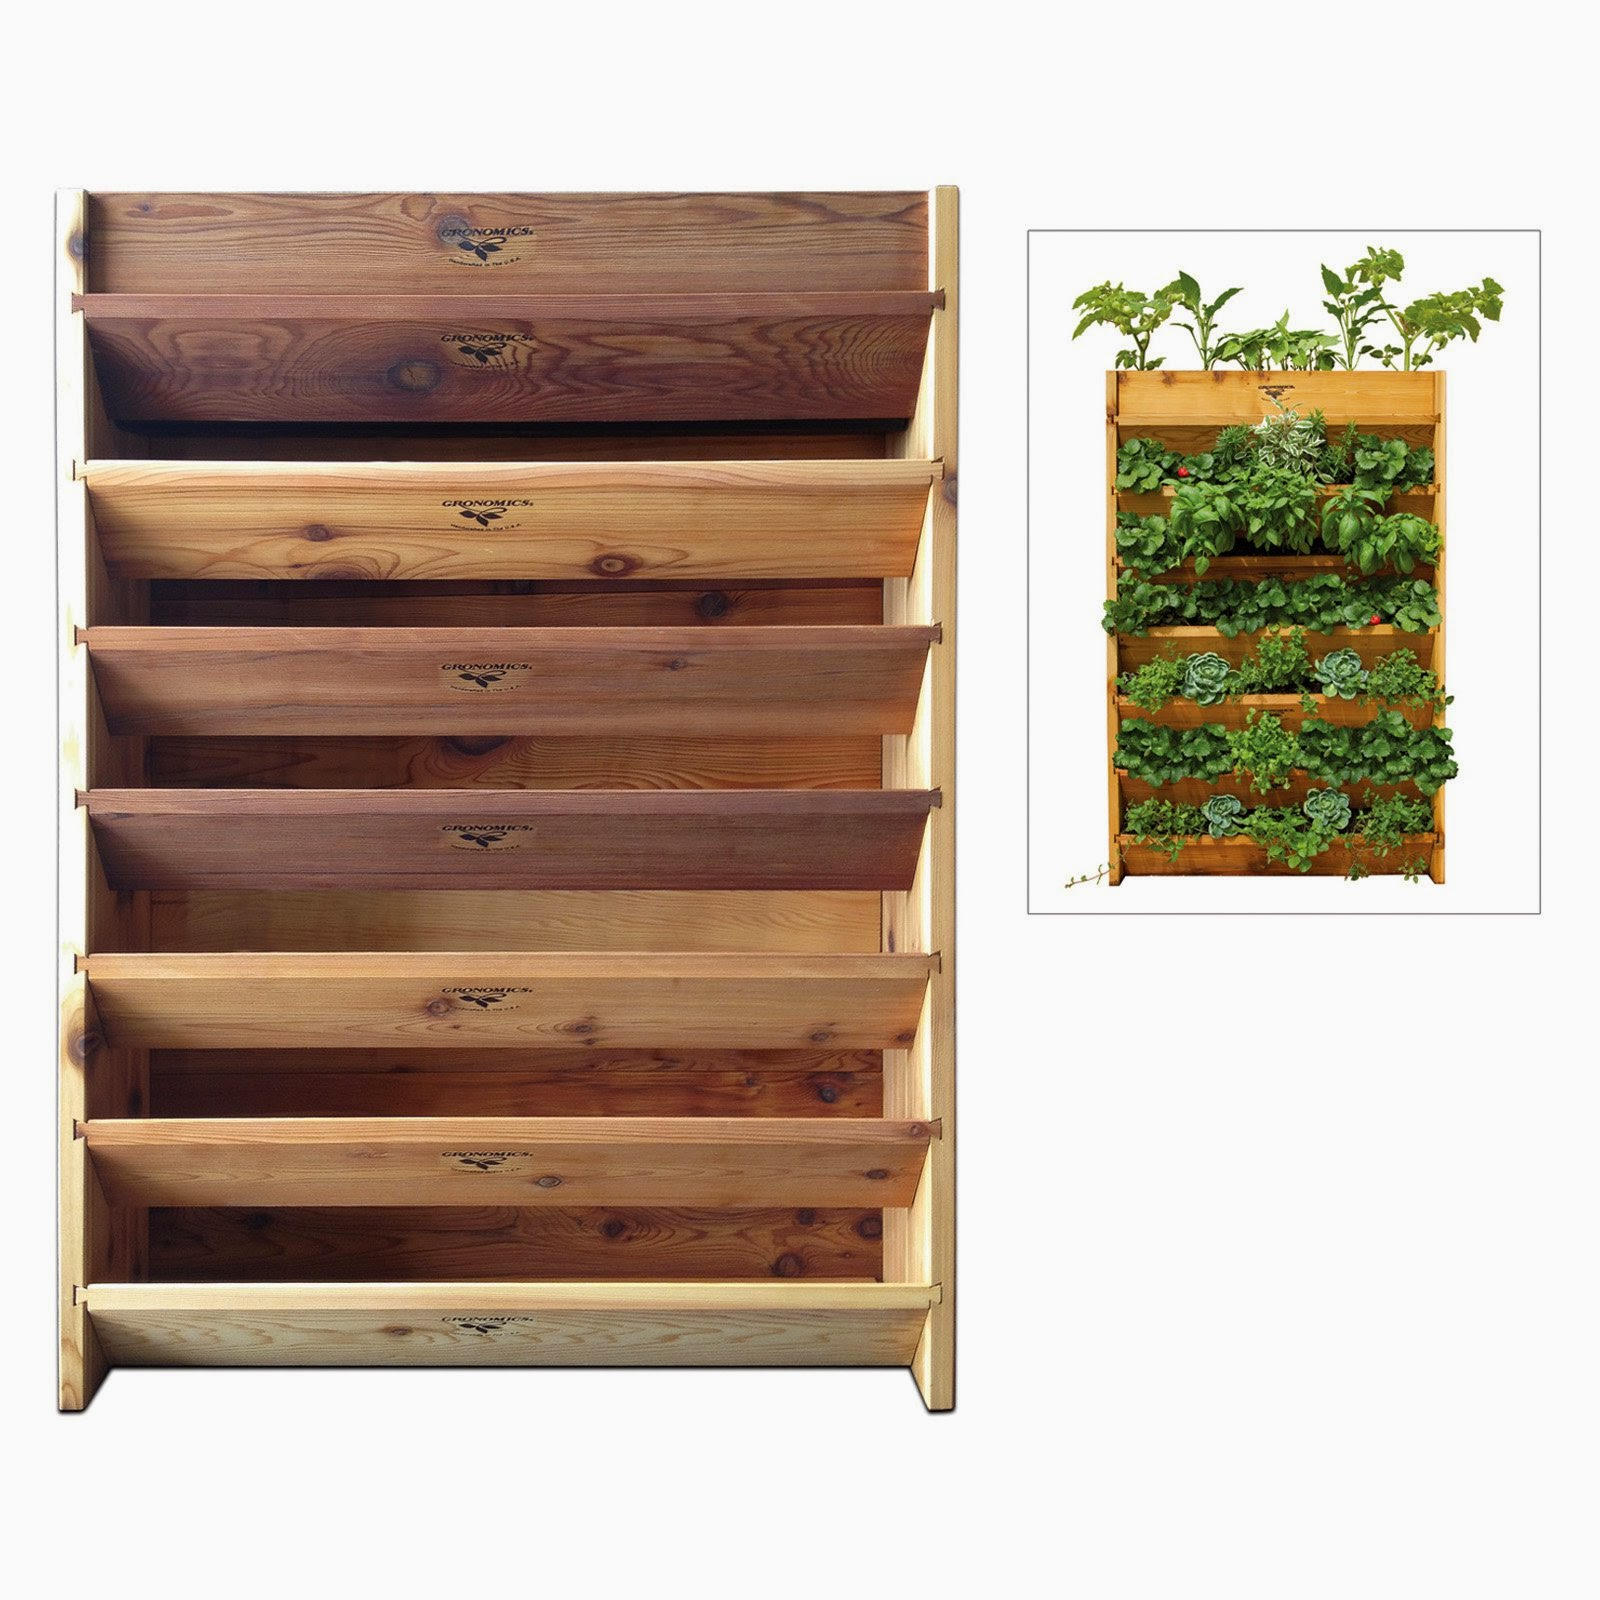 Diy Vintage Chic Diy Vertical Herb Garden Part 1